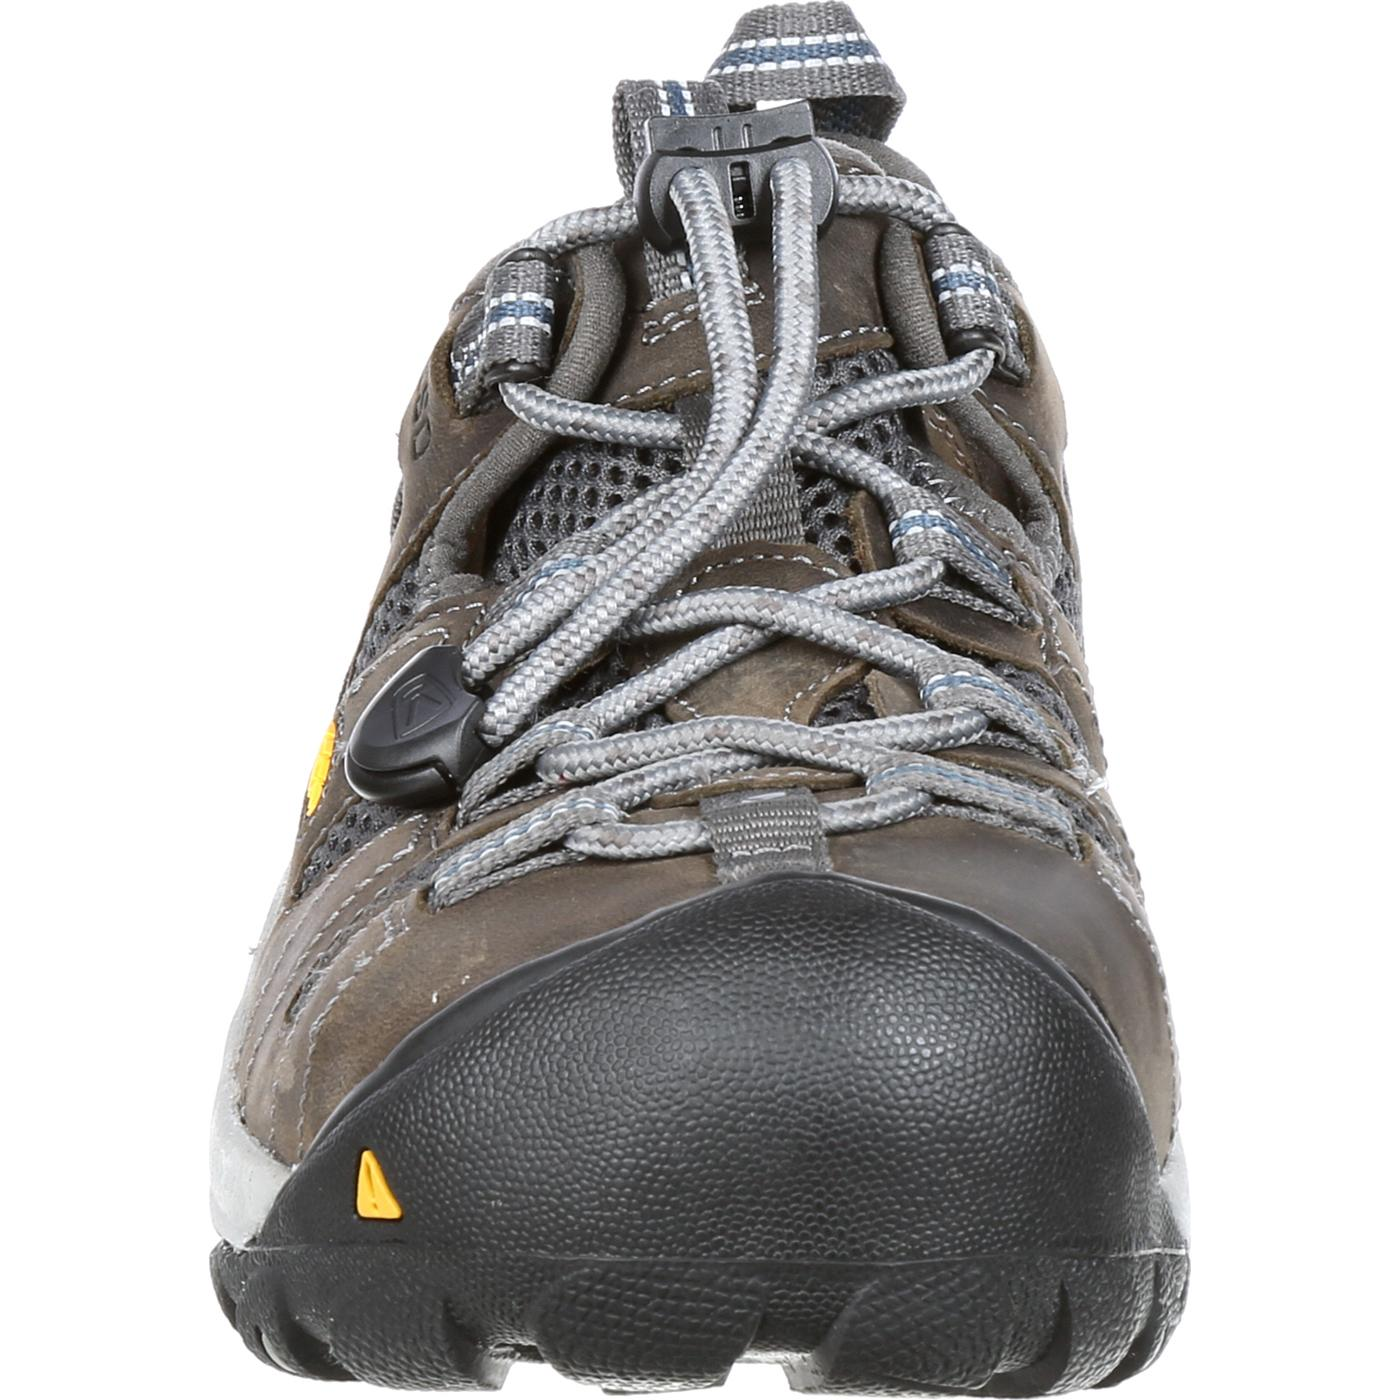 fa35699406e1f2 ... Atlanta Cool Steel Toe Static-Dissipative Work Athletic Shoe